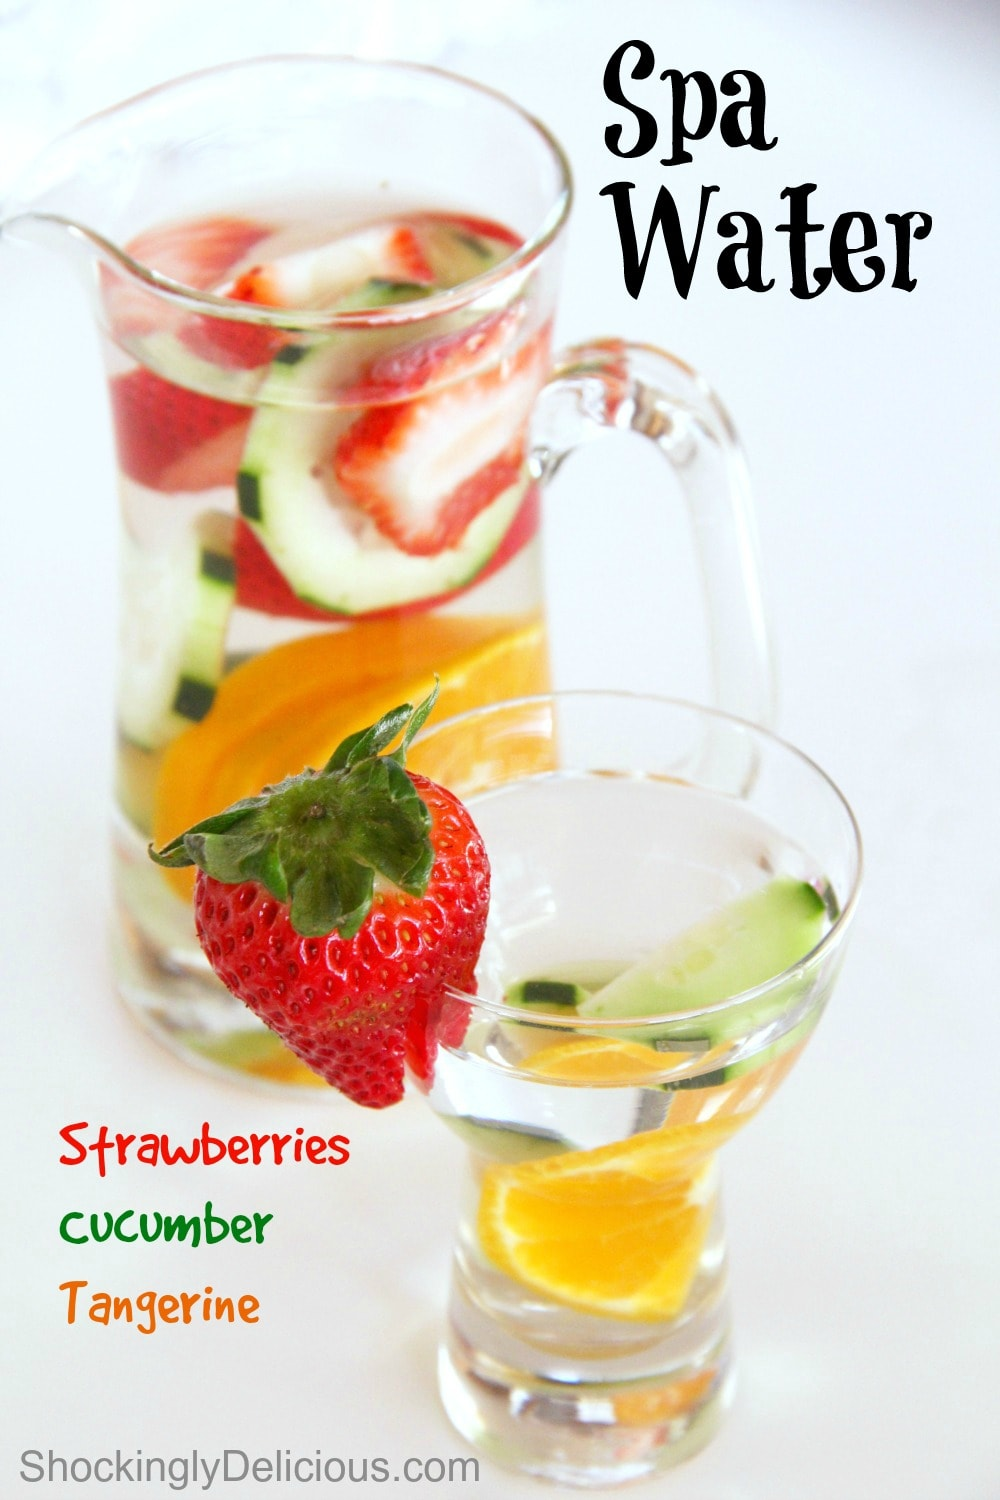 Glass of water with cut fruit in it in front of a pitcher of water with fruit in it